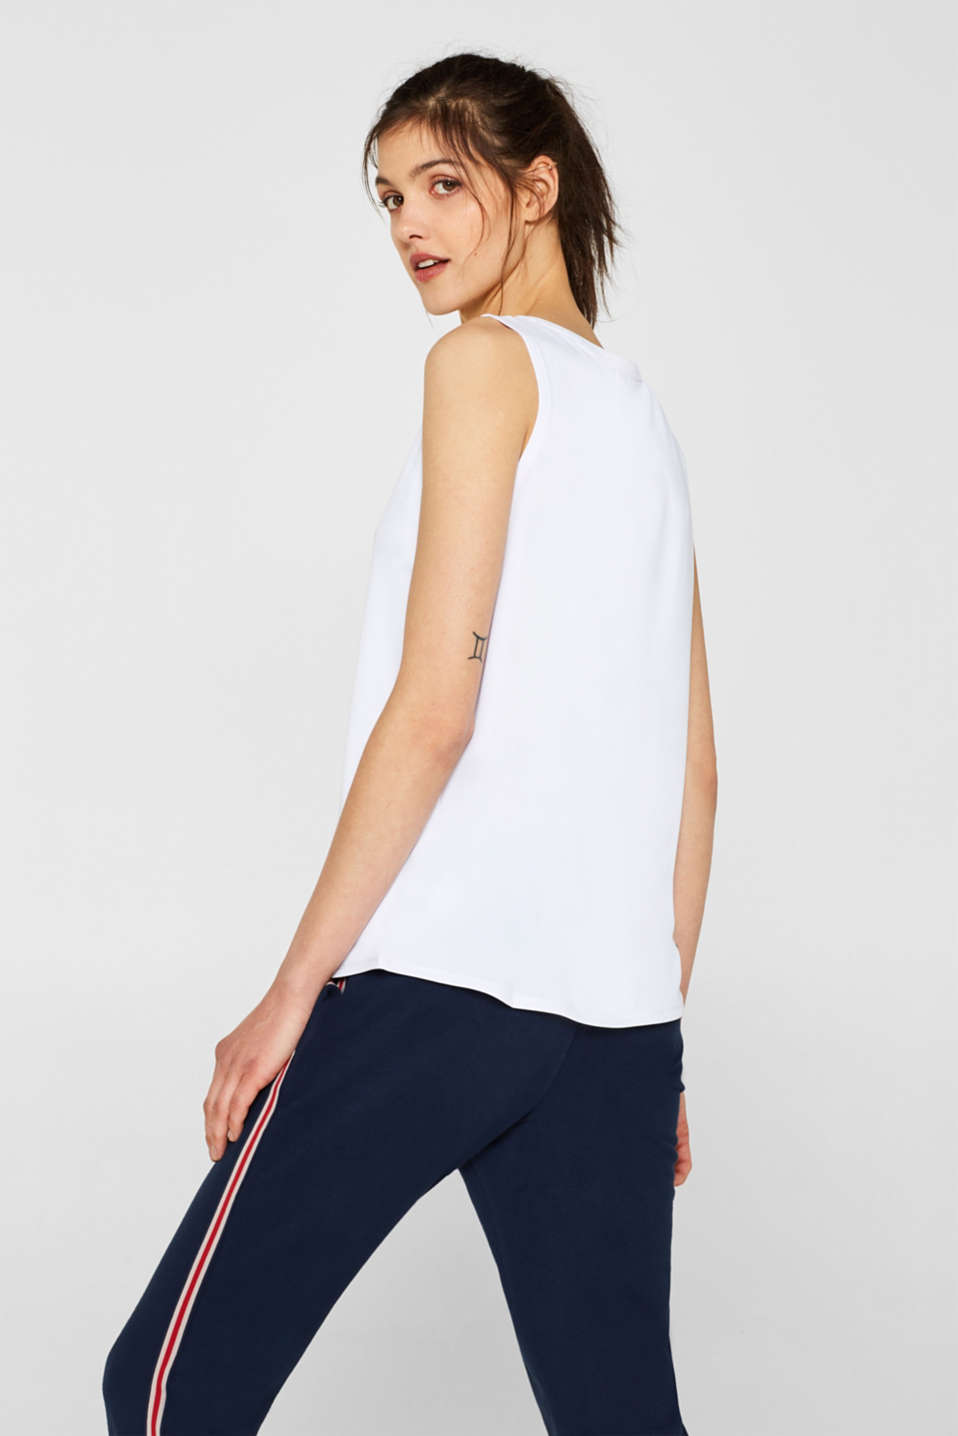 Stretch top with a statement print, E-DRY, WHITE, detail image number 3